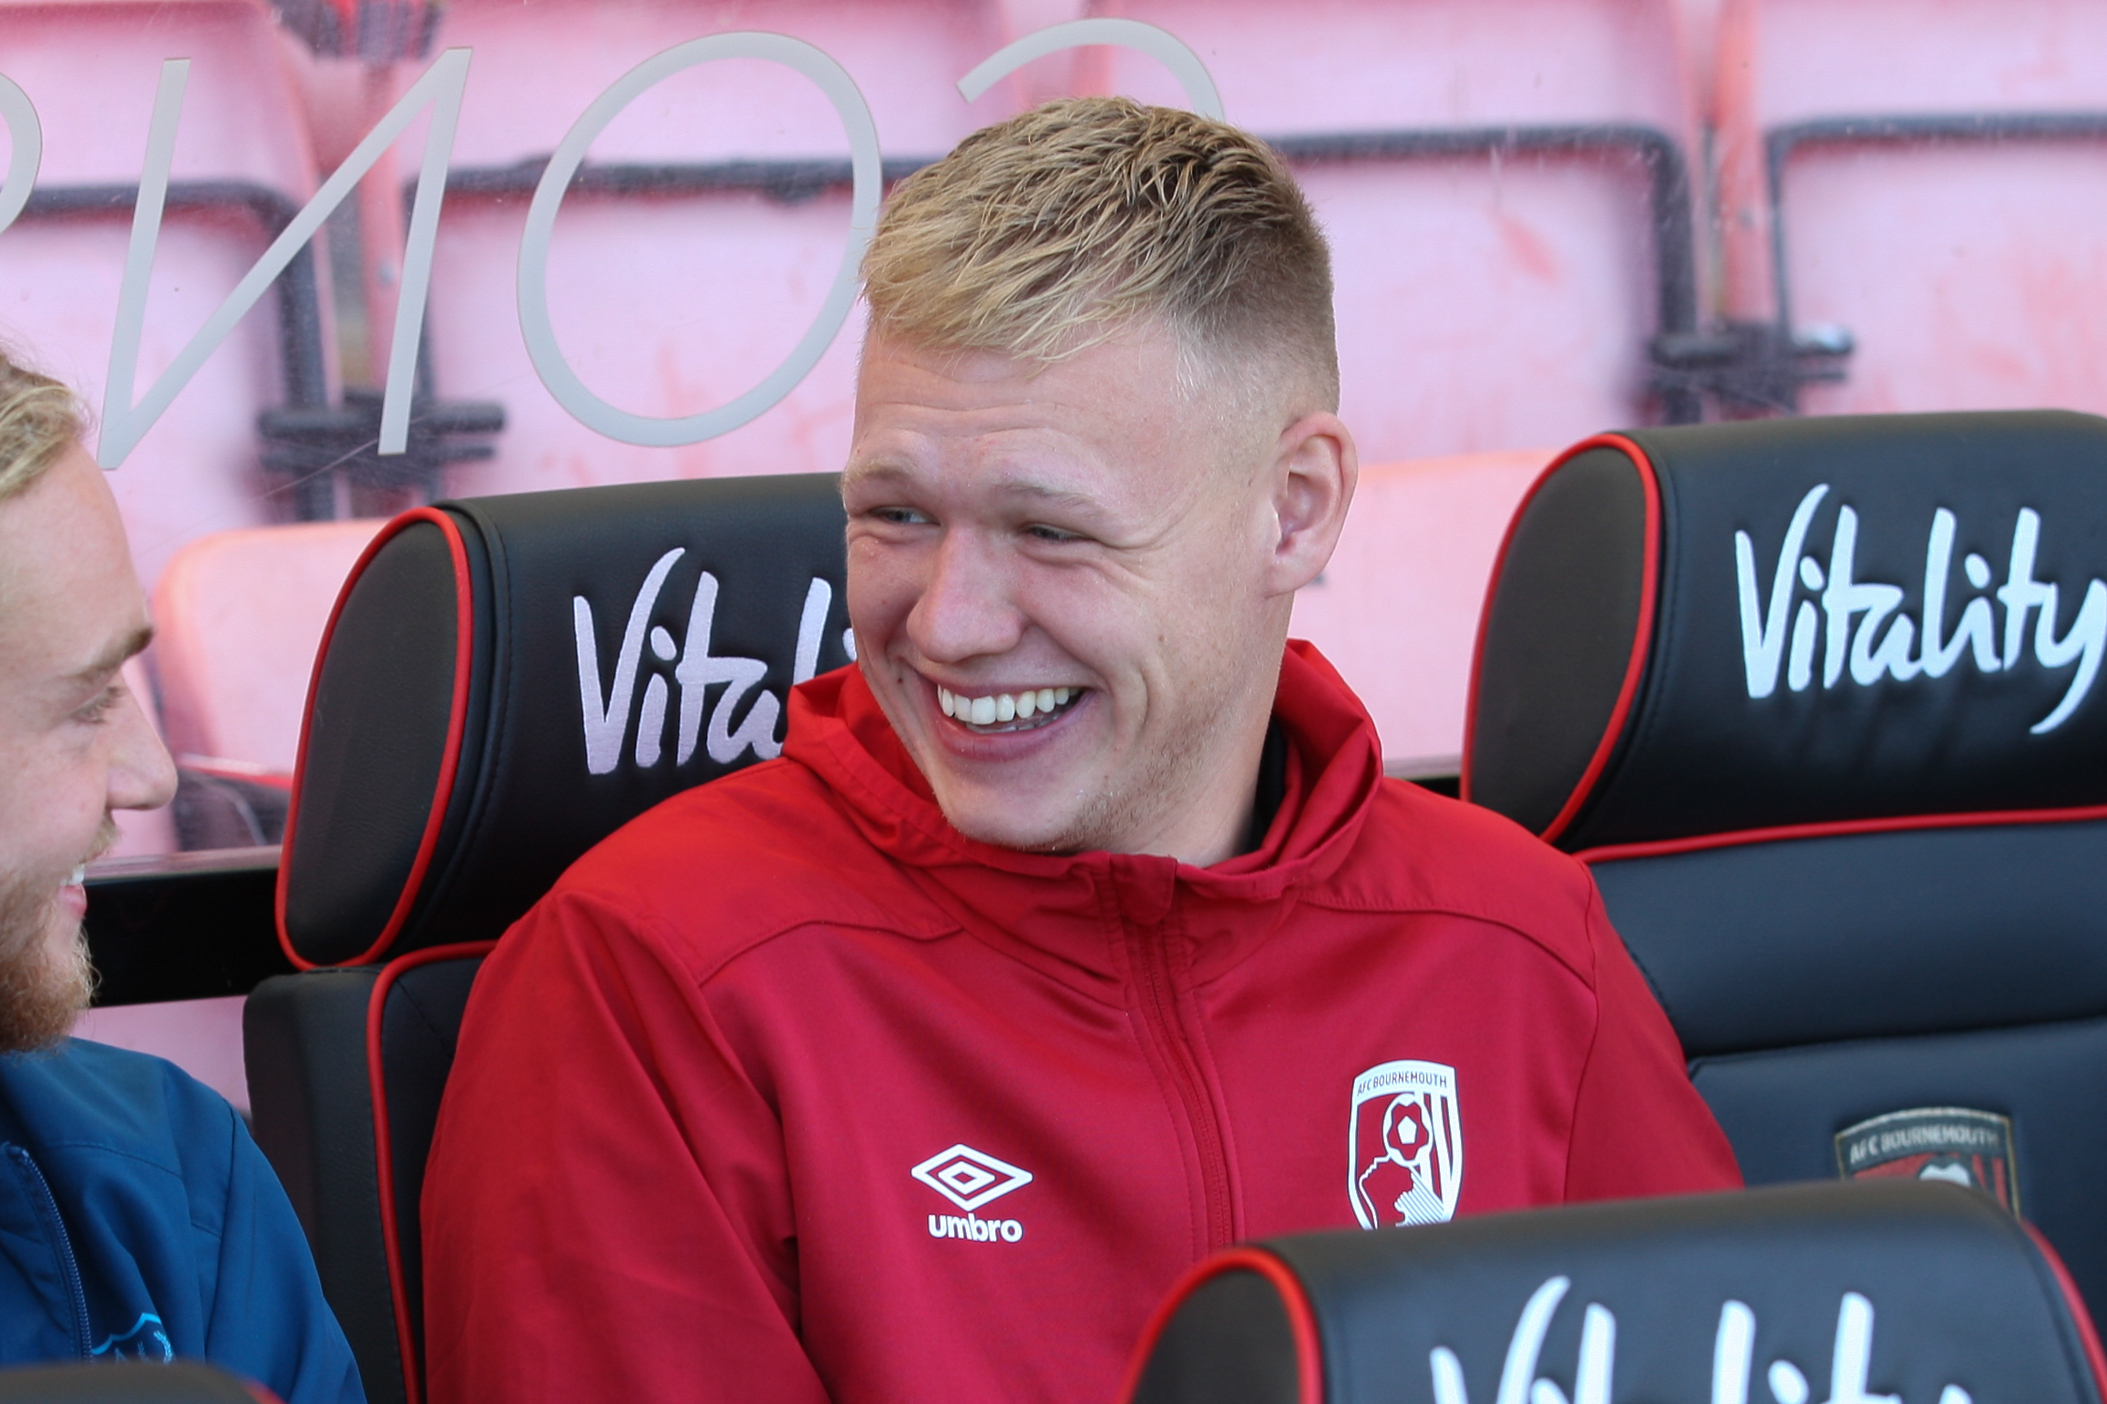 'That's the biggest change in Aaron' - Eddie Howe praises Aaron Ramsdale's ability to balance his 'joking' and 'serious' sides